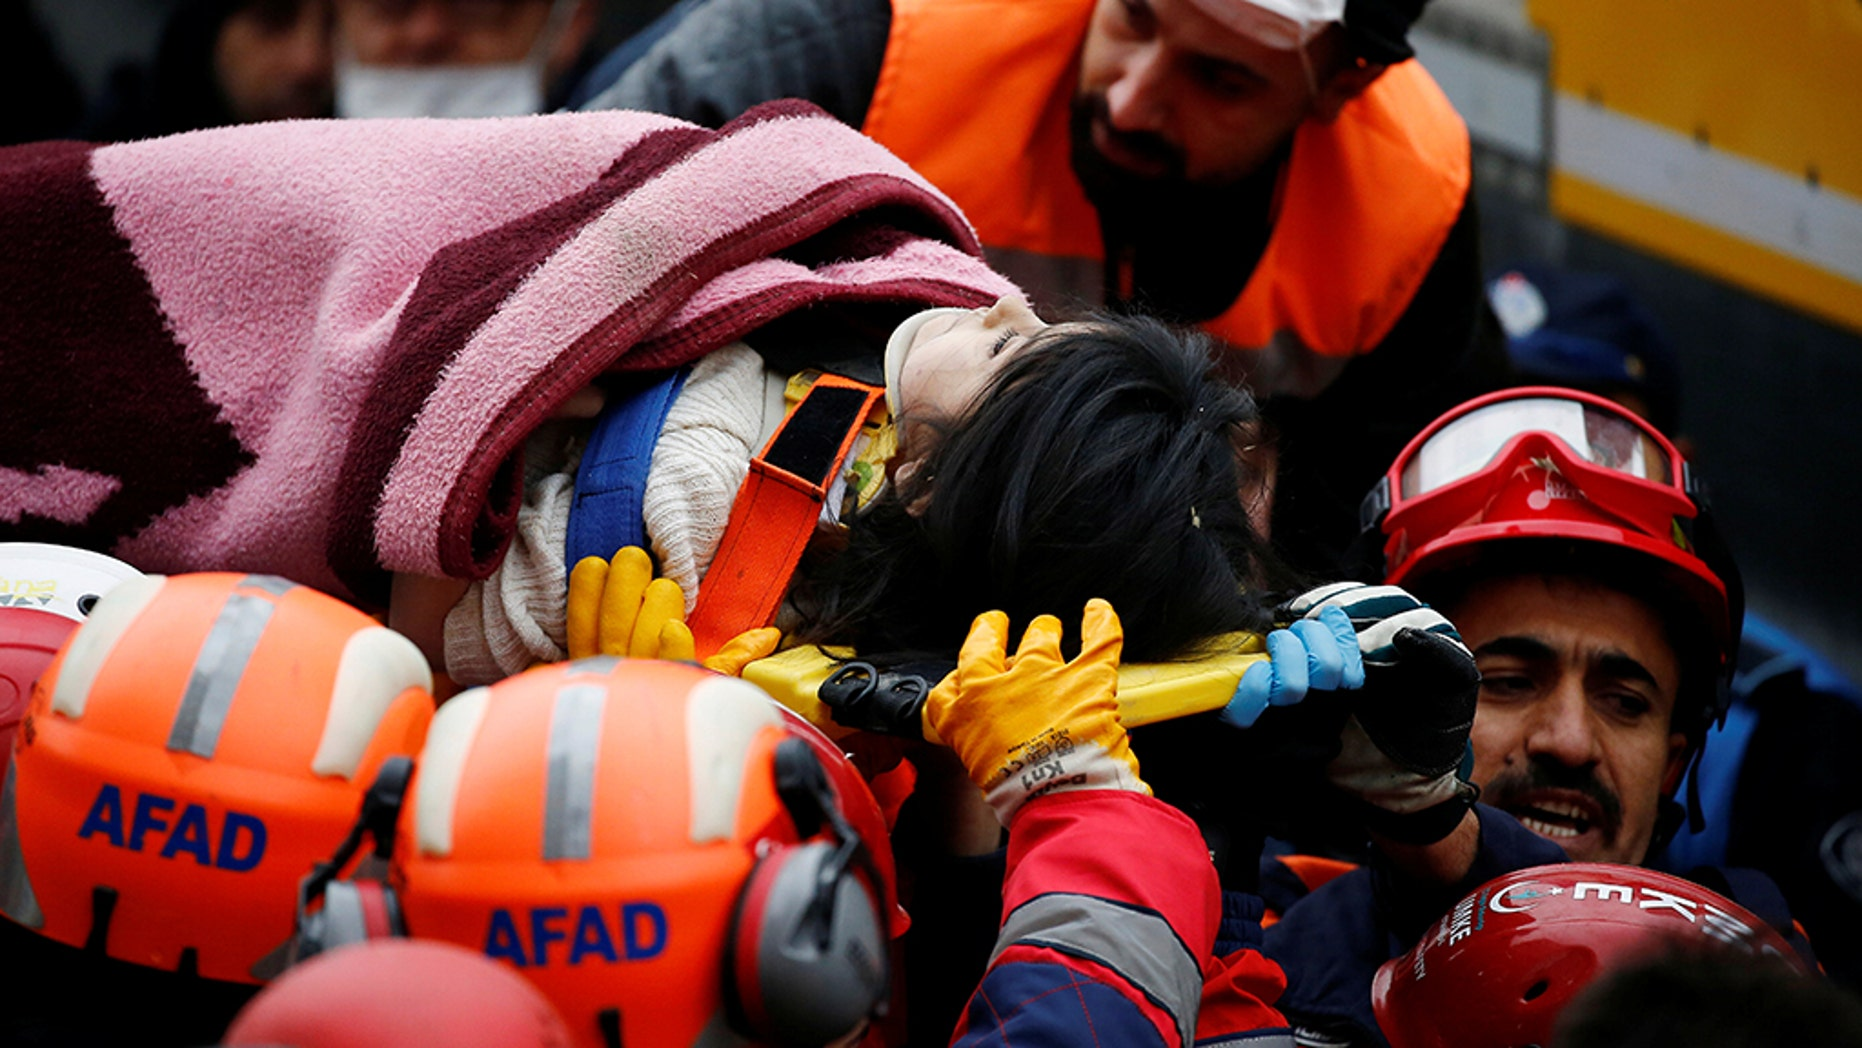 Rescuers carry a girl on a stretcher at the site of a collapsed residential building in the Kartal district, Istanbul, Turkey, February 7, 2019.